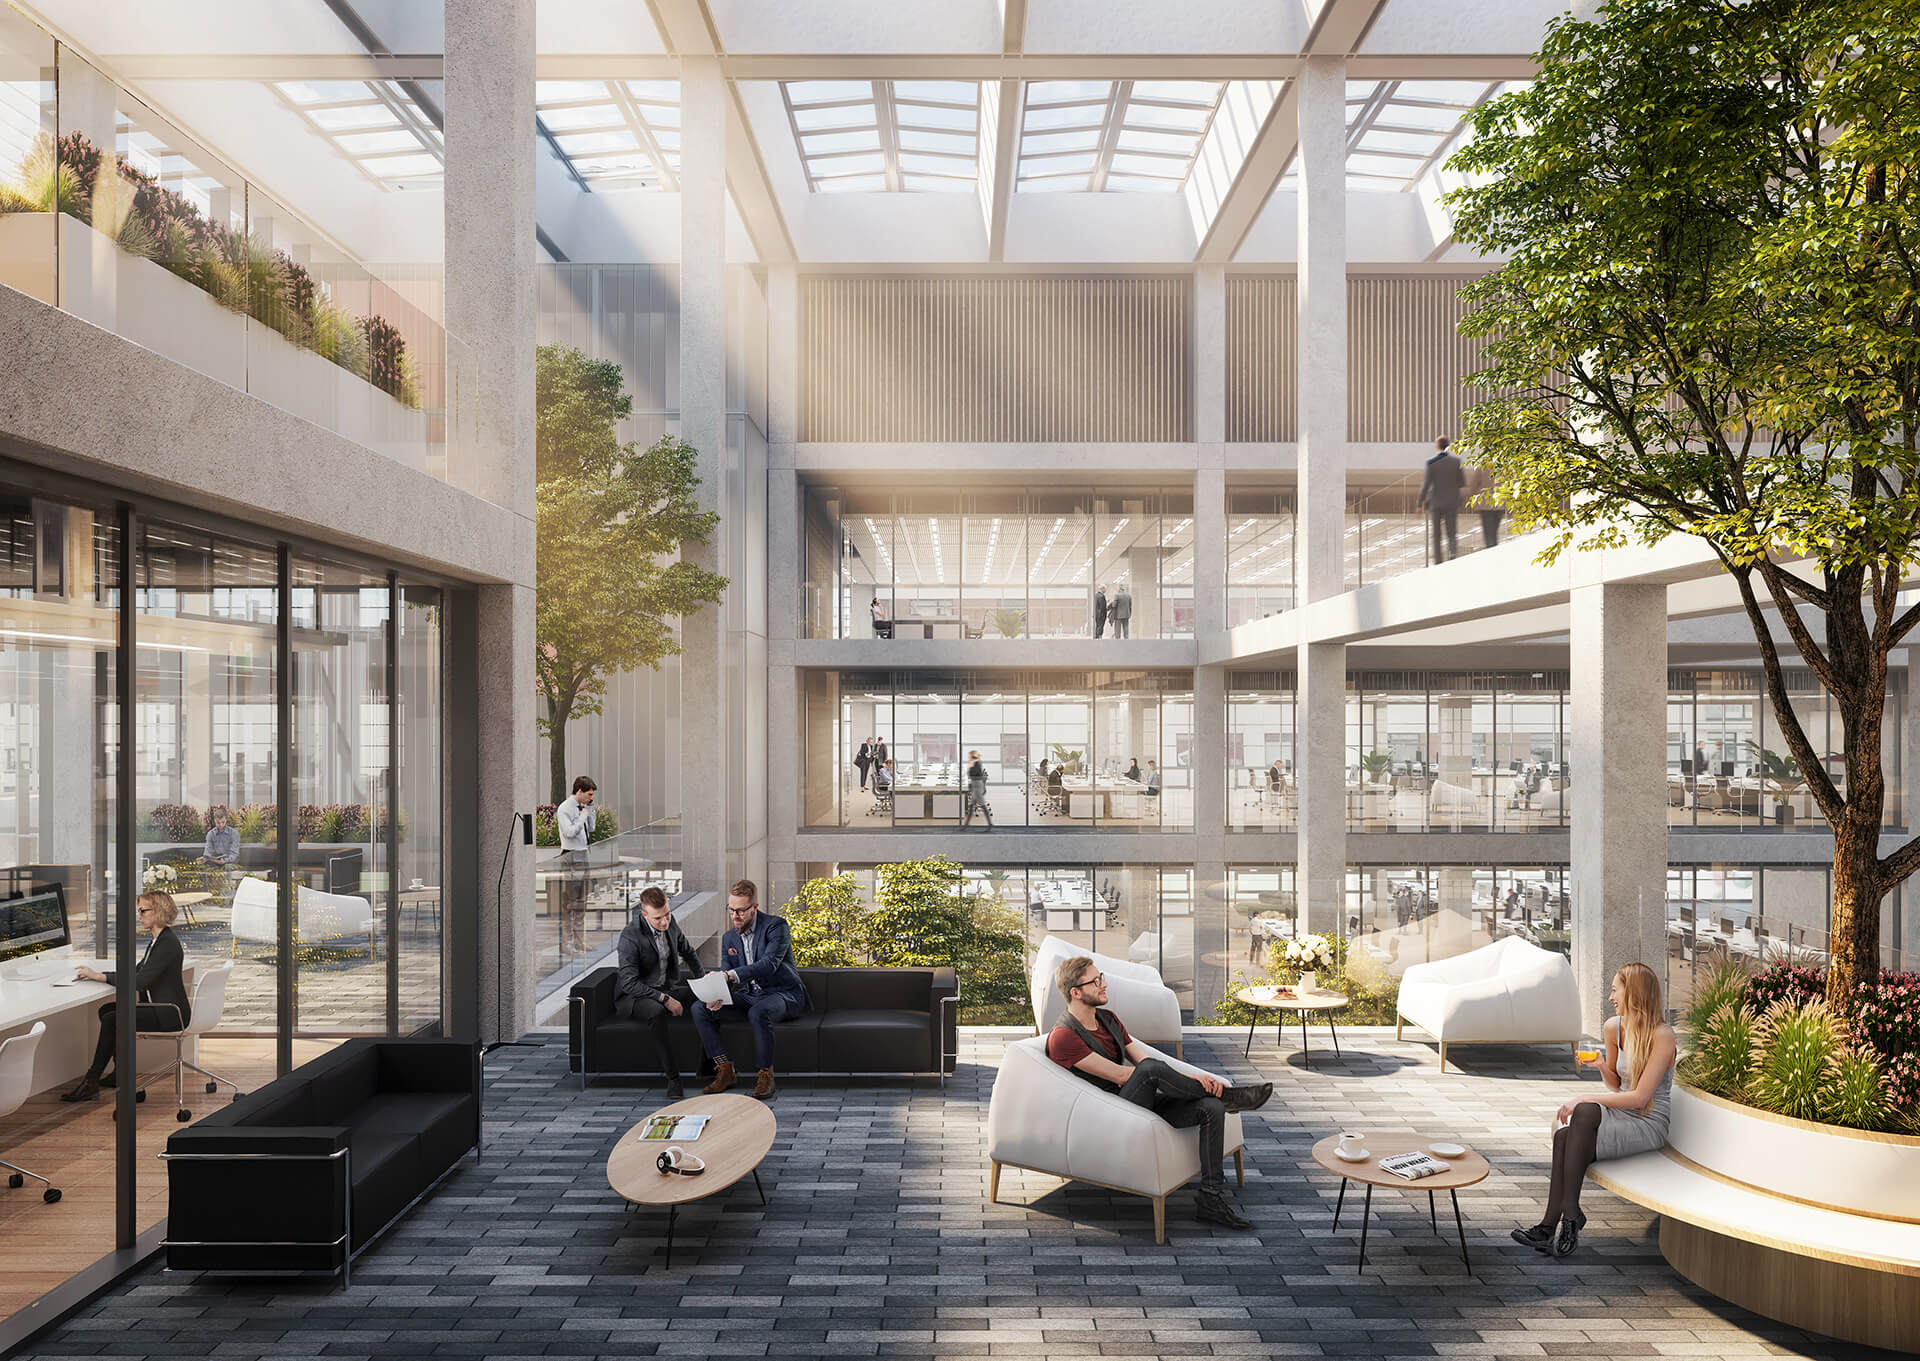 The structural grid and fluid internal spaces that allow openness and interaction at all levels | Icône office complex | Foster + Partners | STIRworld